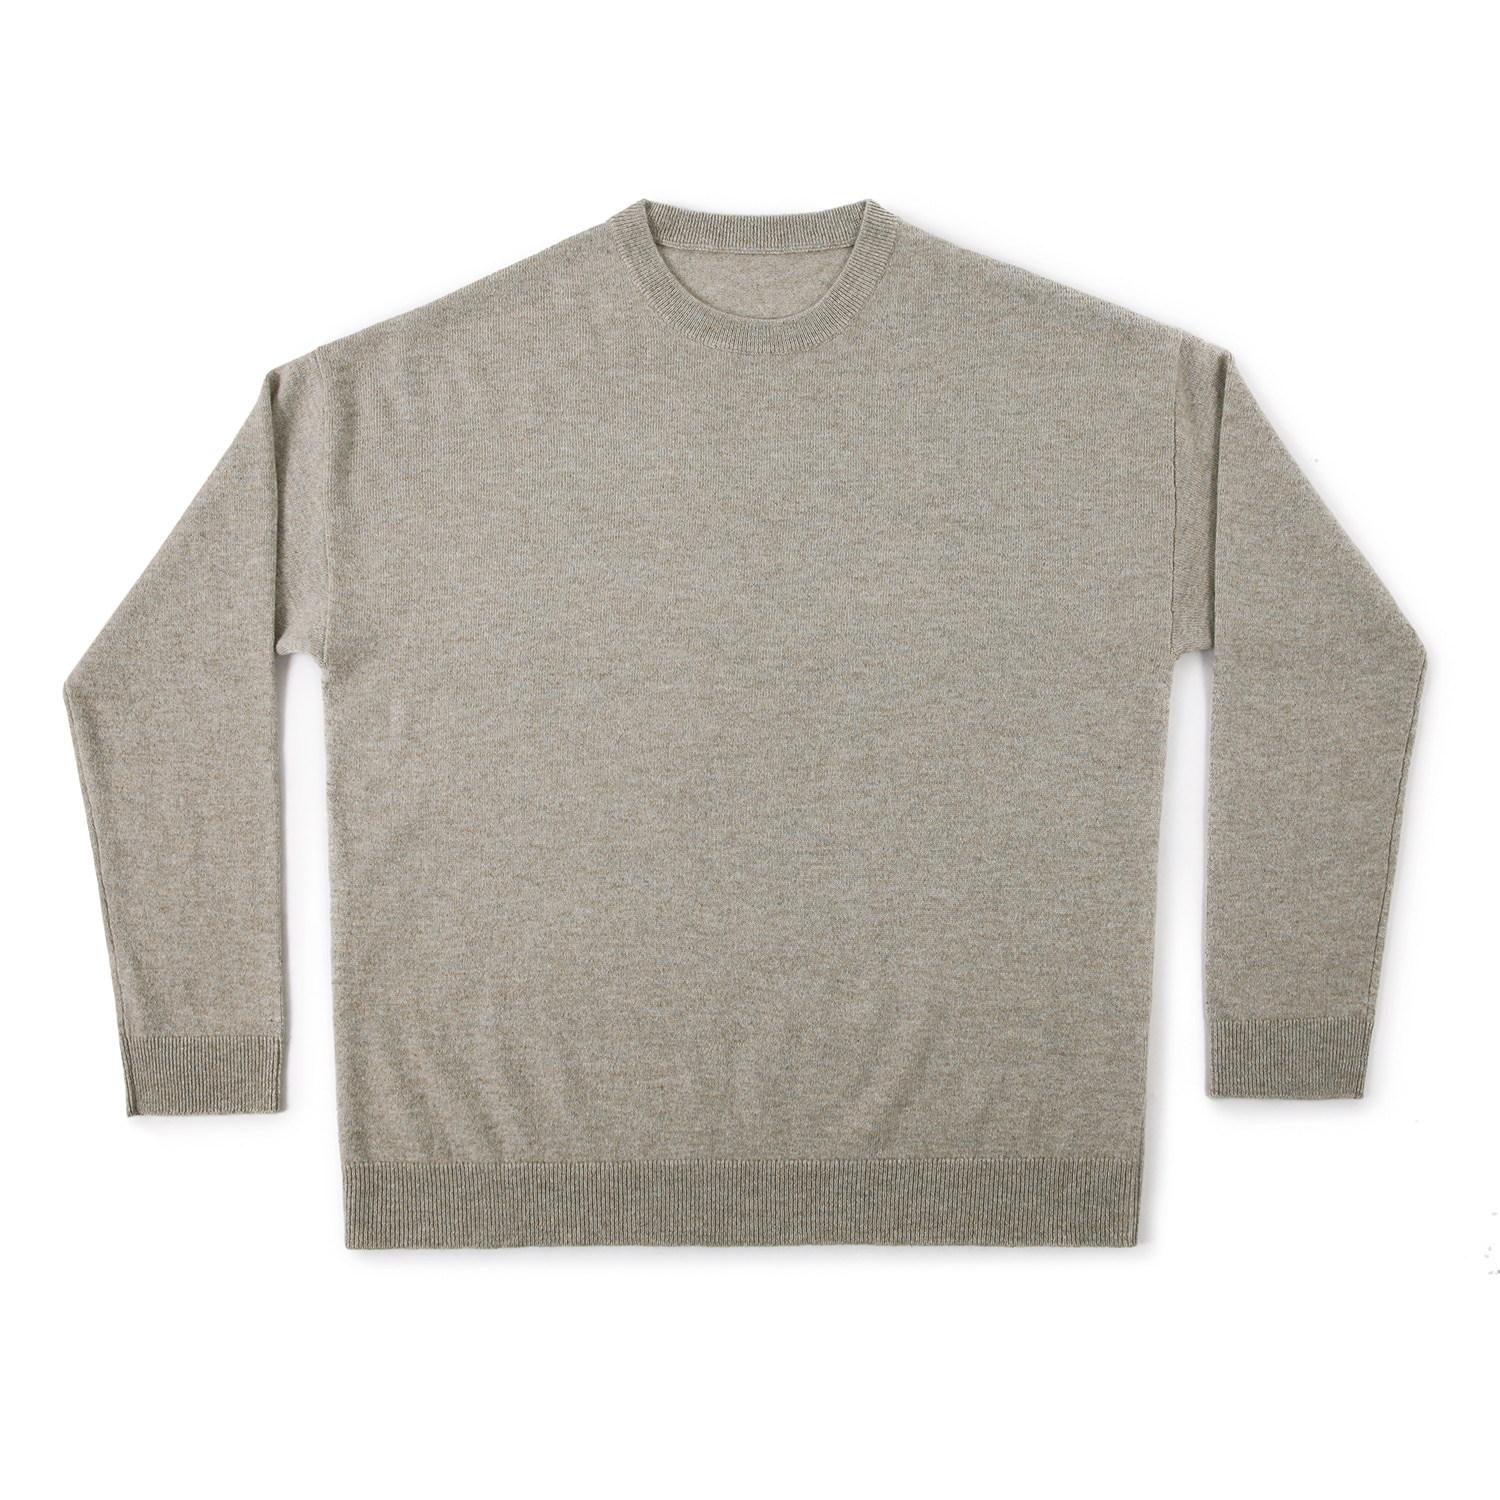 25%OFF_Cashmere100 Oversized Knit (Oatmeal)